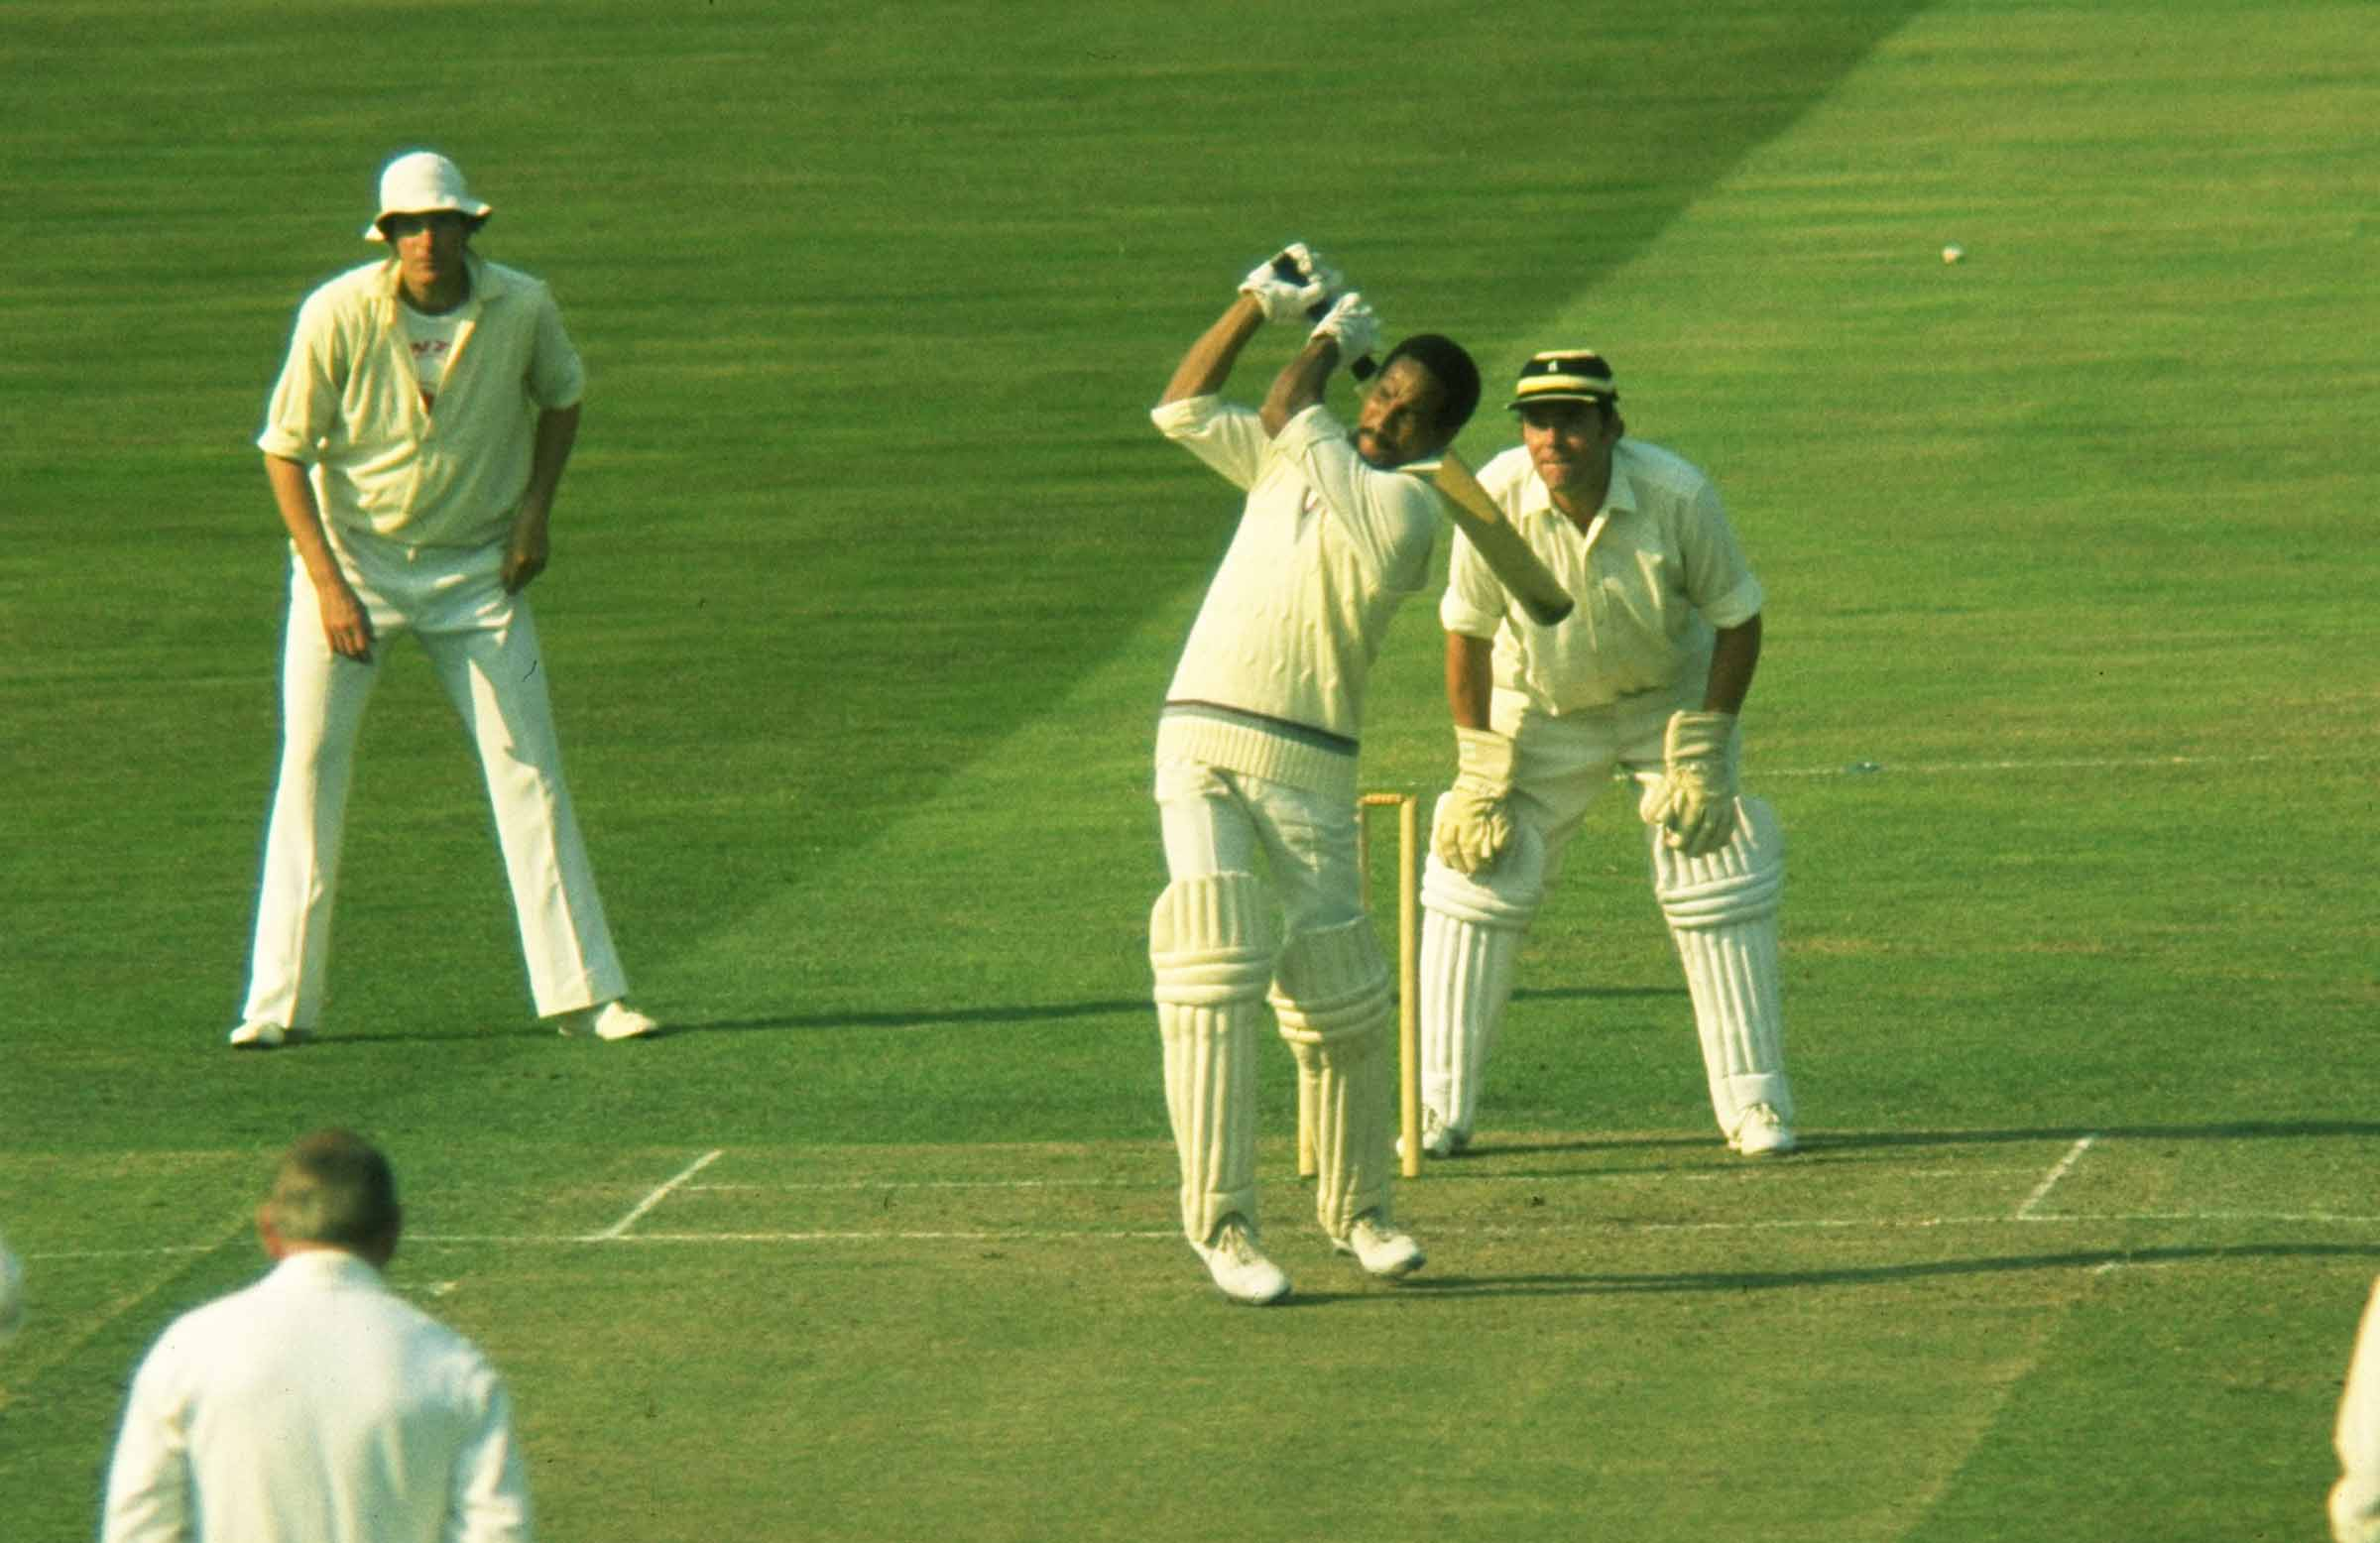 Legendary West Indian Sobers in action in 1972 // Getty